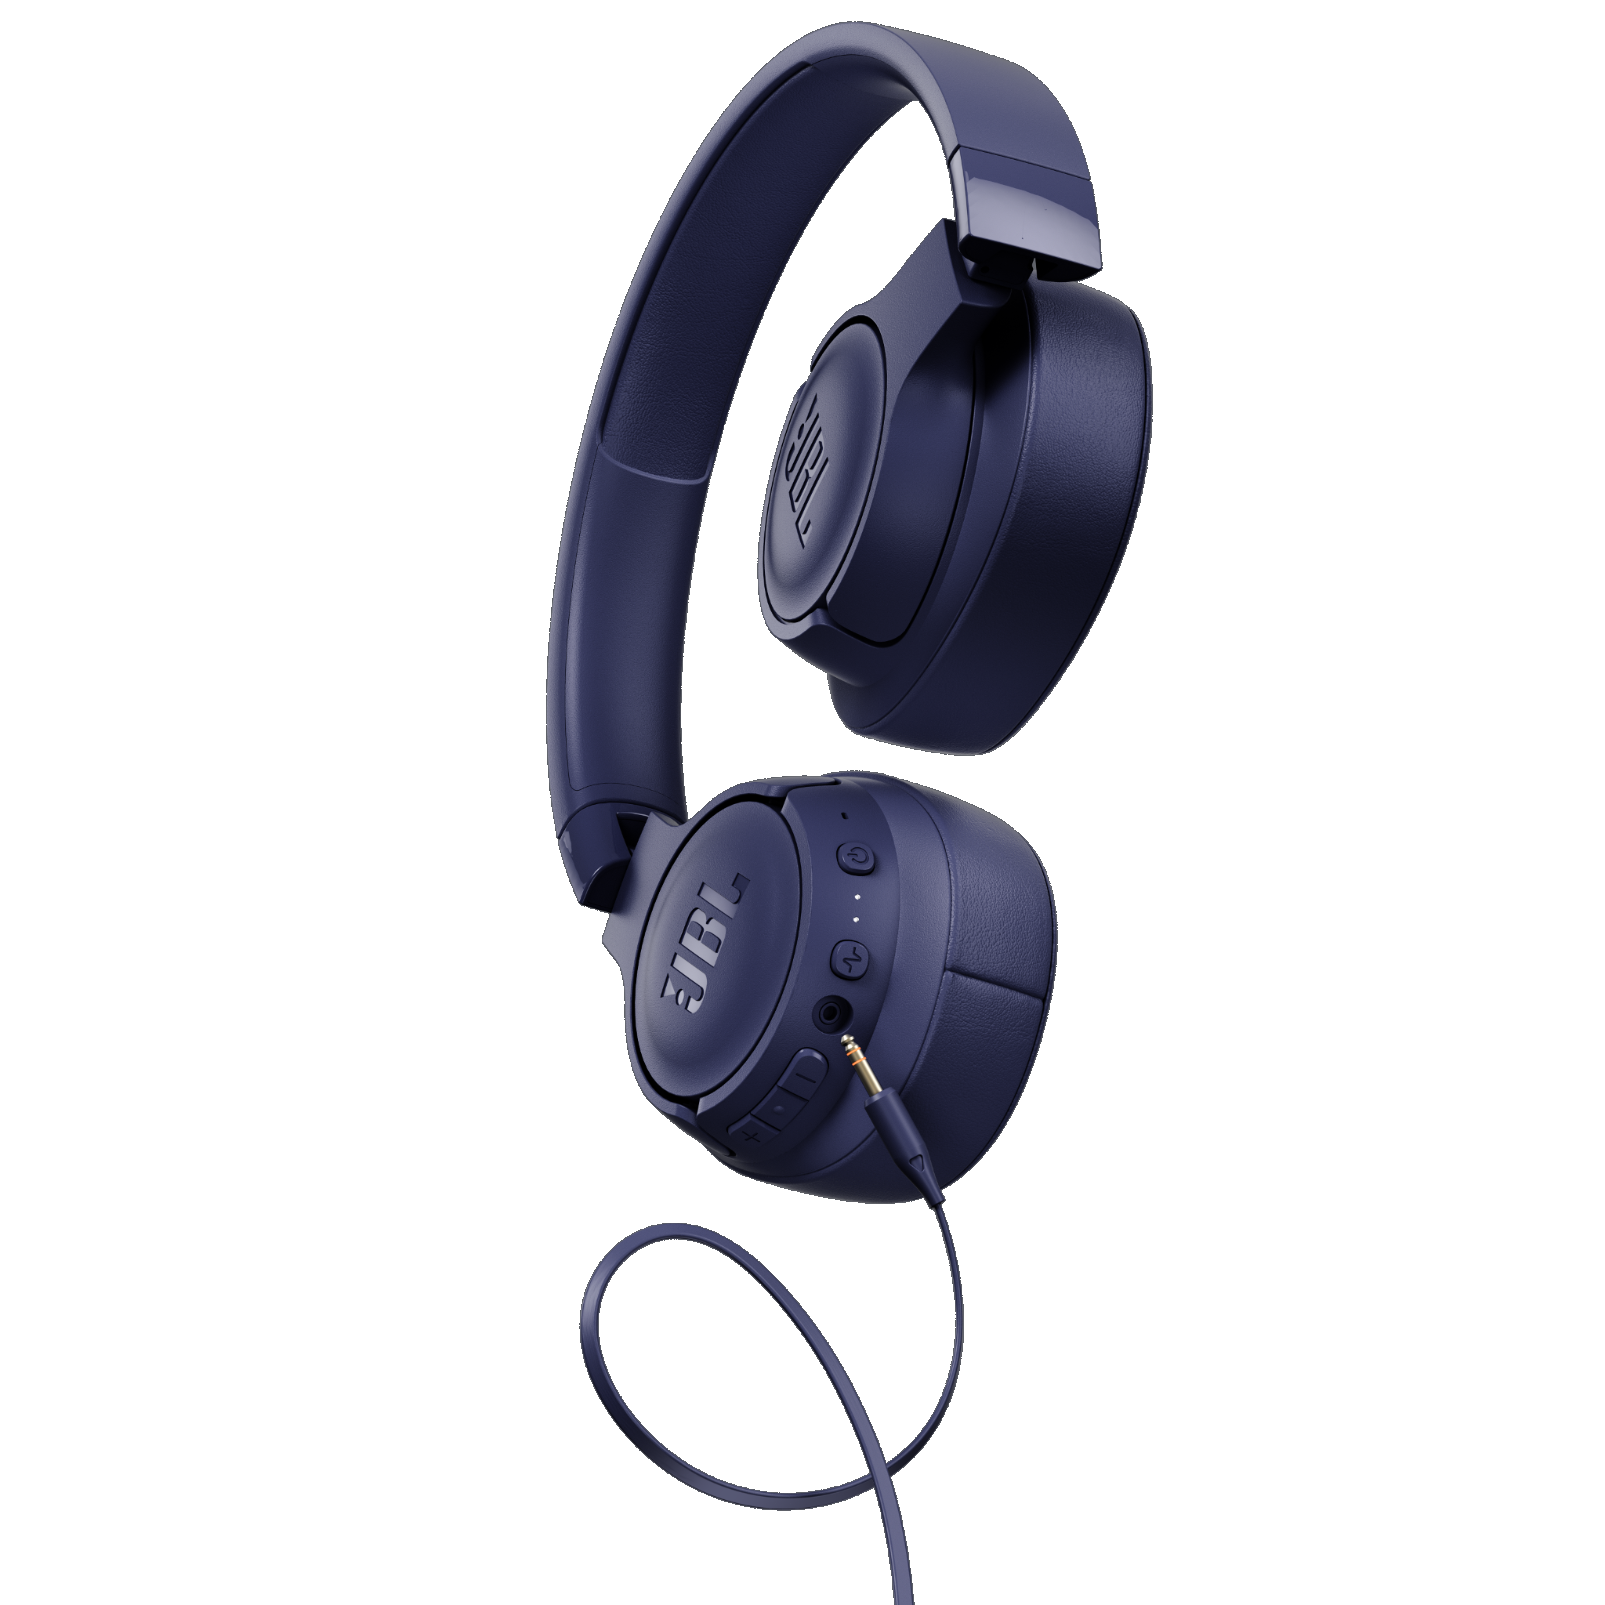 JBL TUNE 750BTNC - Blue - Wireless Over-Ear ANC Headphones - Detailshot 7